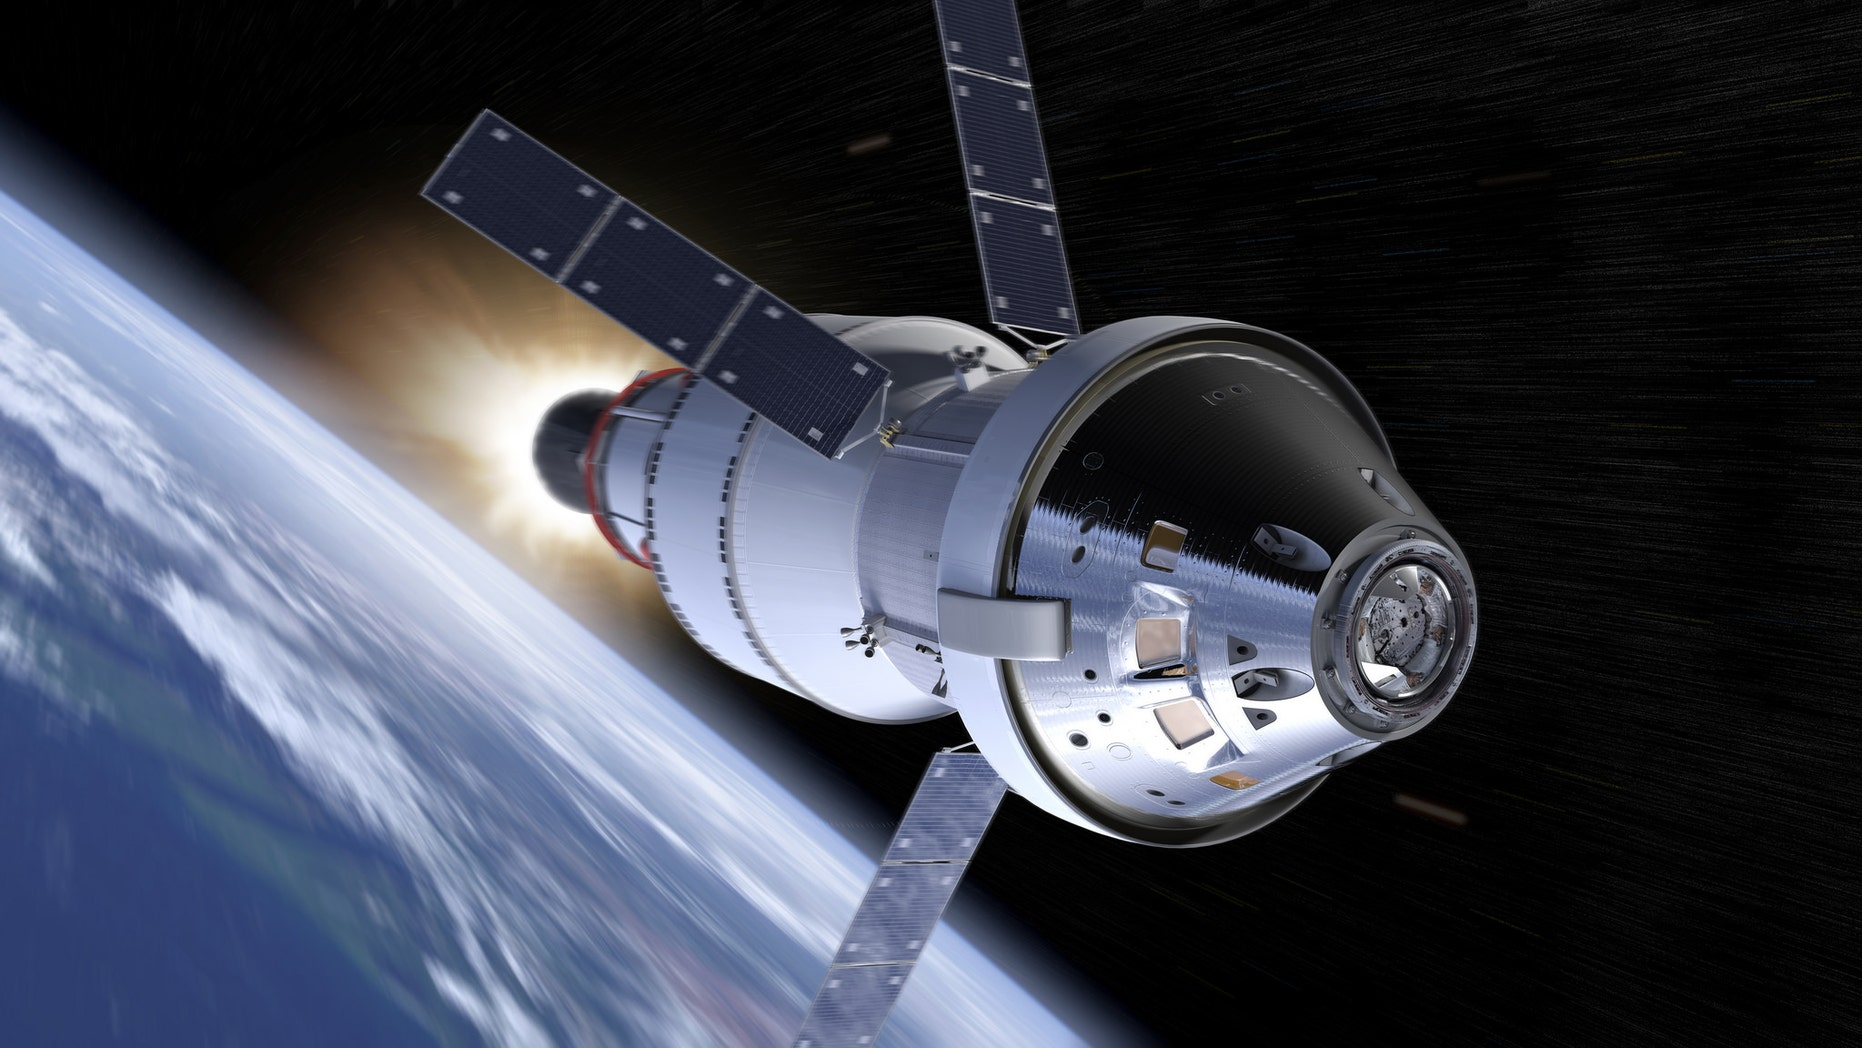 Artist's impression of the Orion spacecraft (NASA).